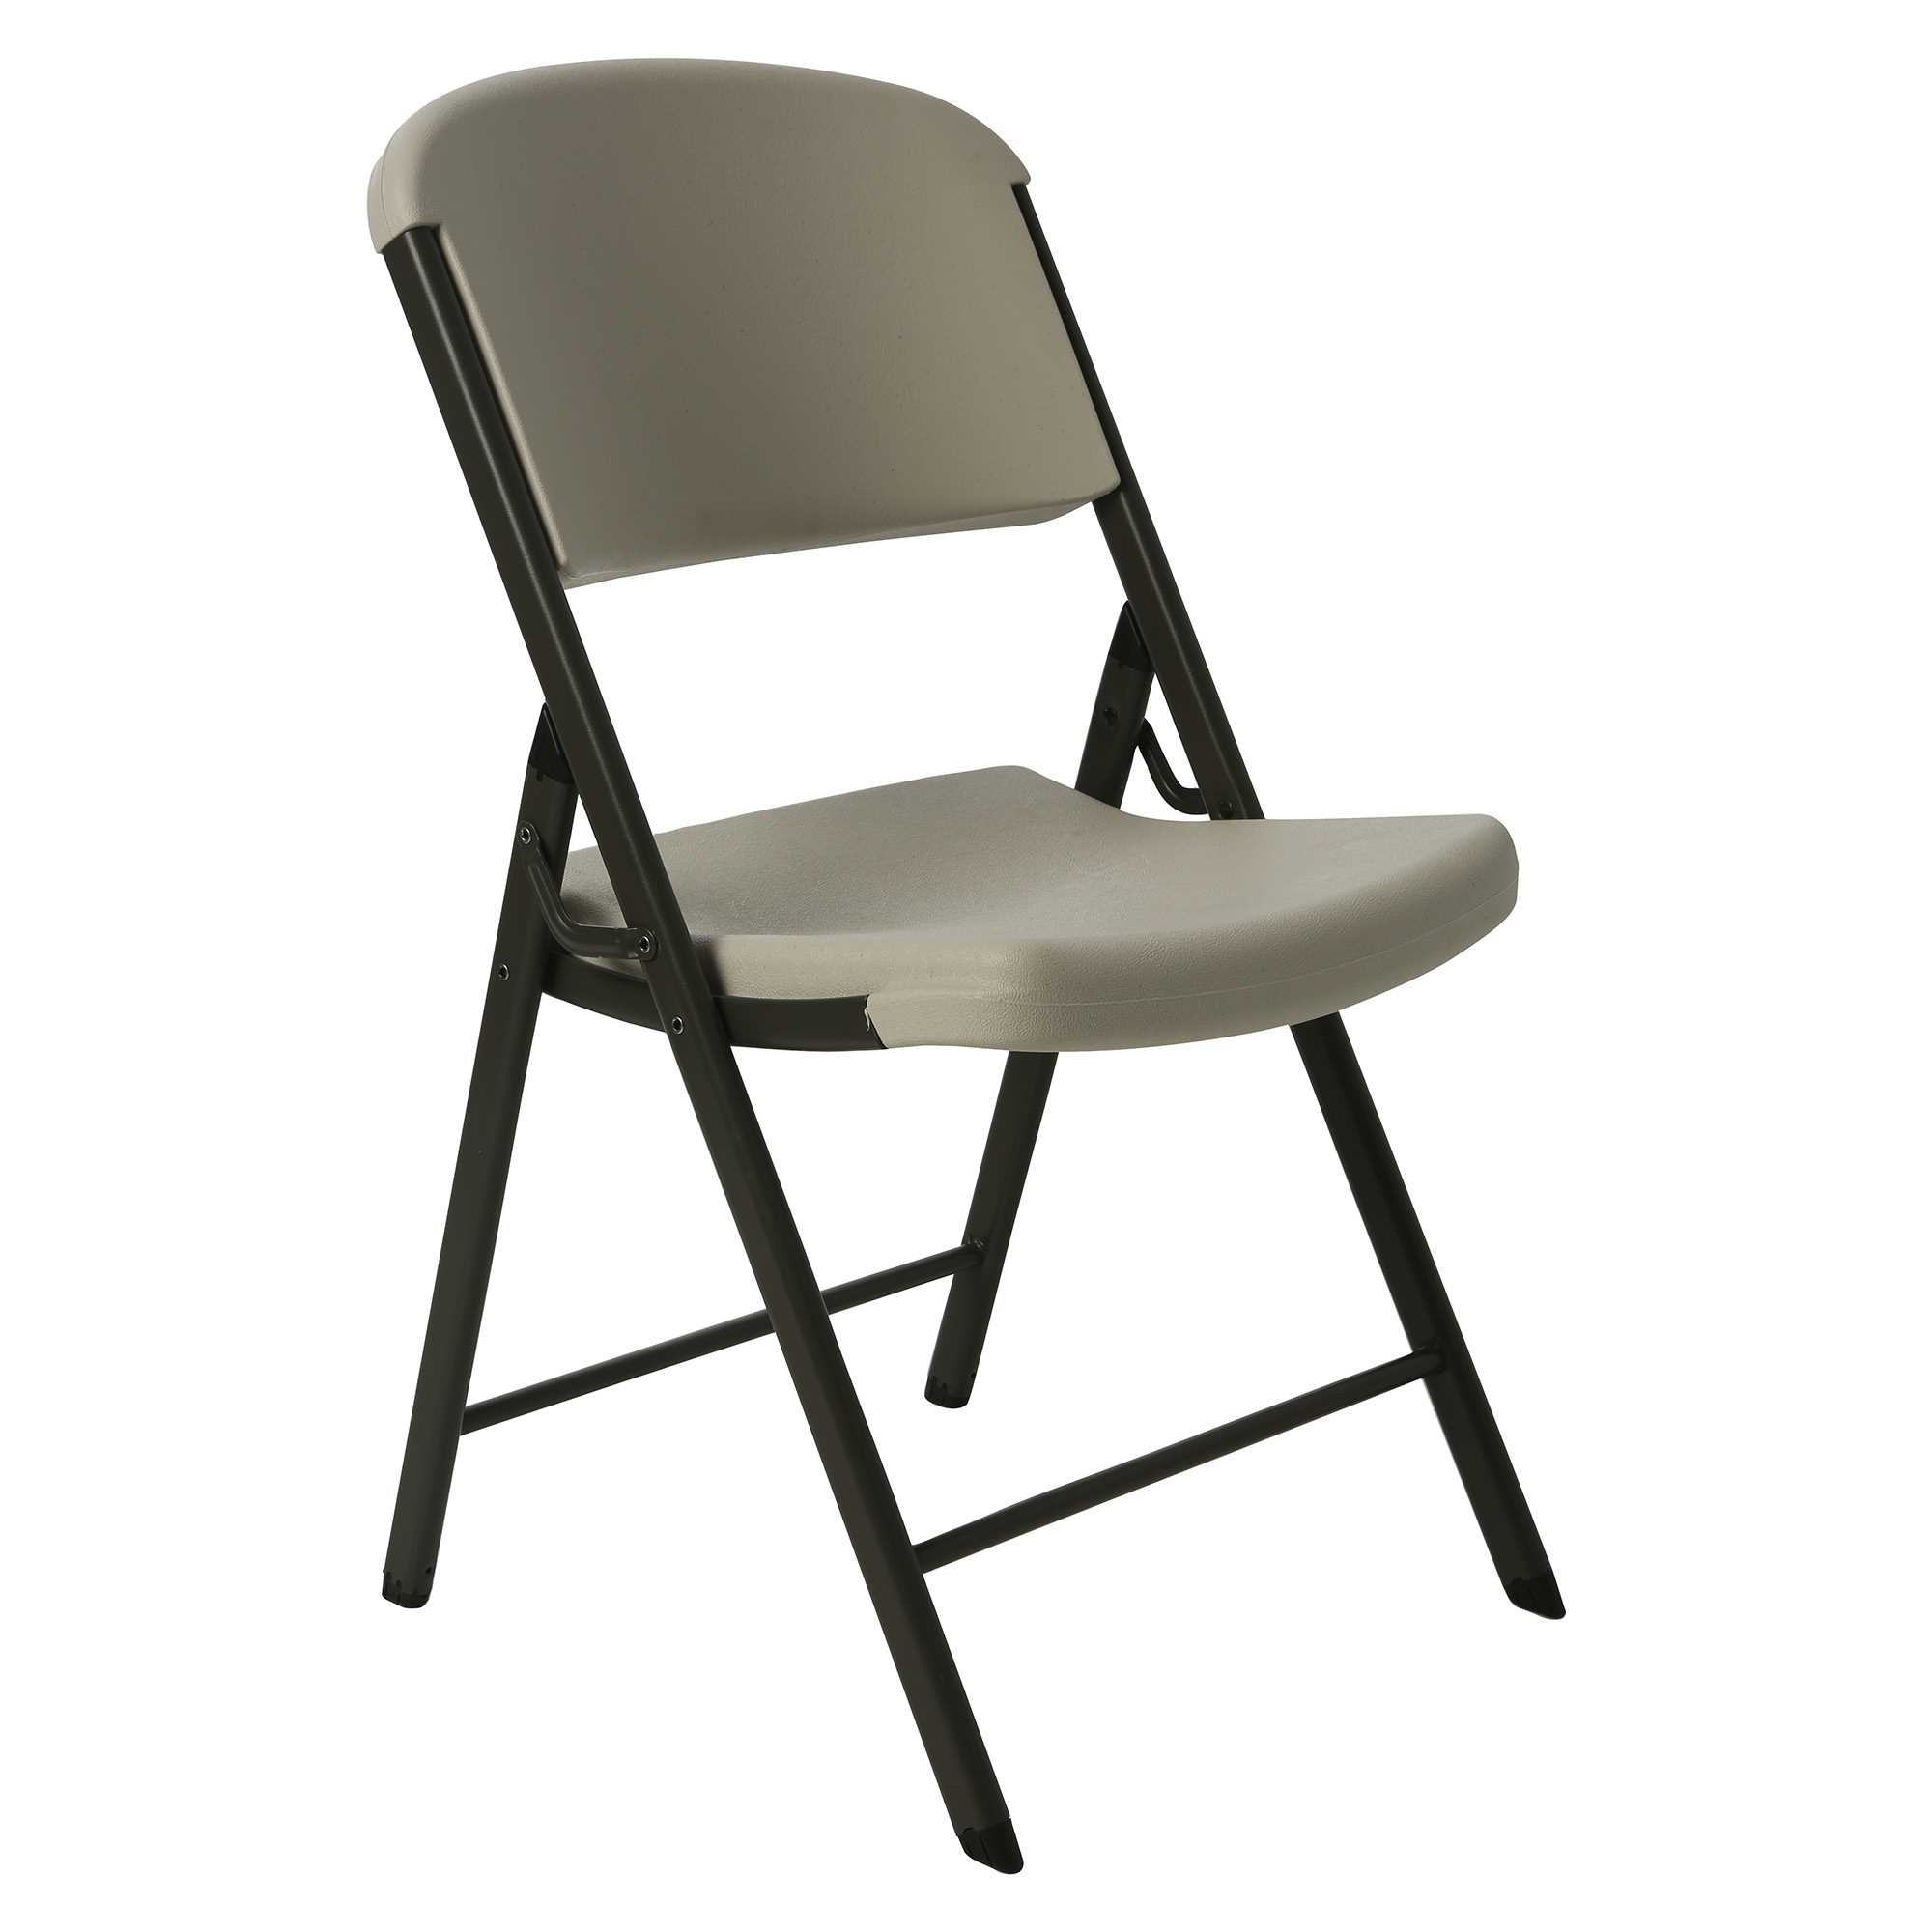 Lifetime Commercial Grade Contoured Folding Chair Select